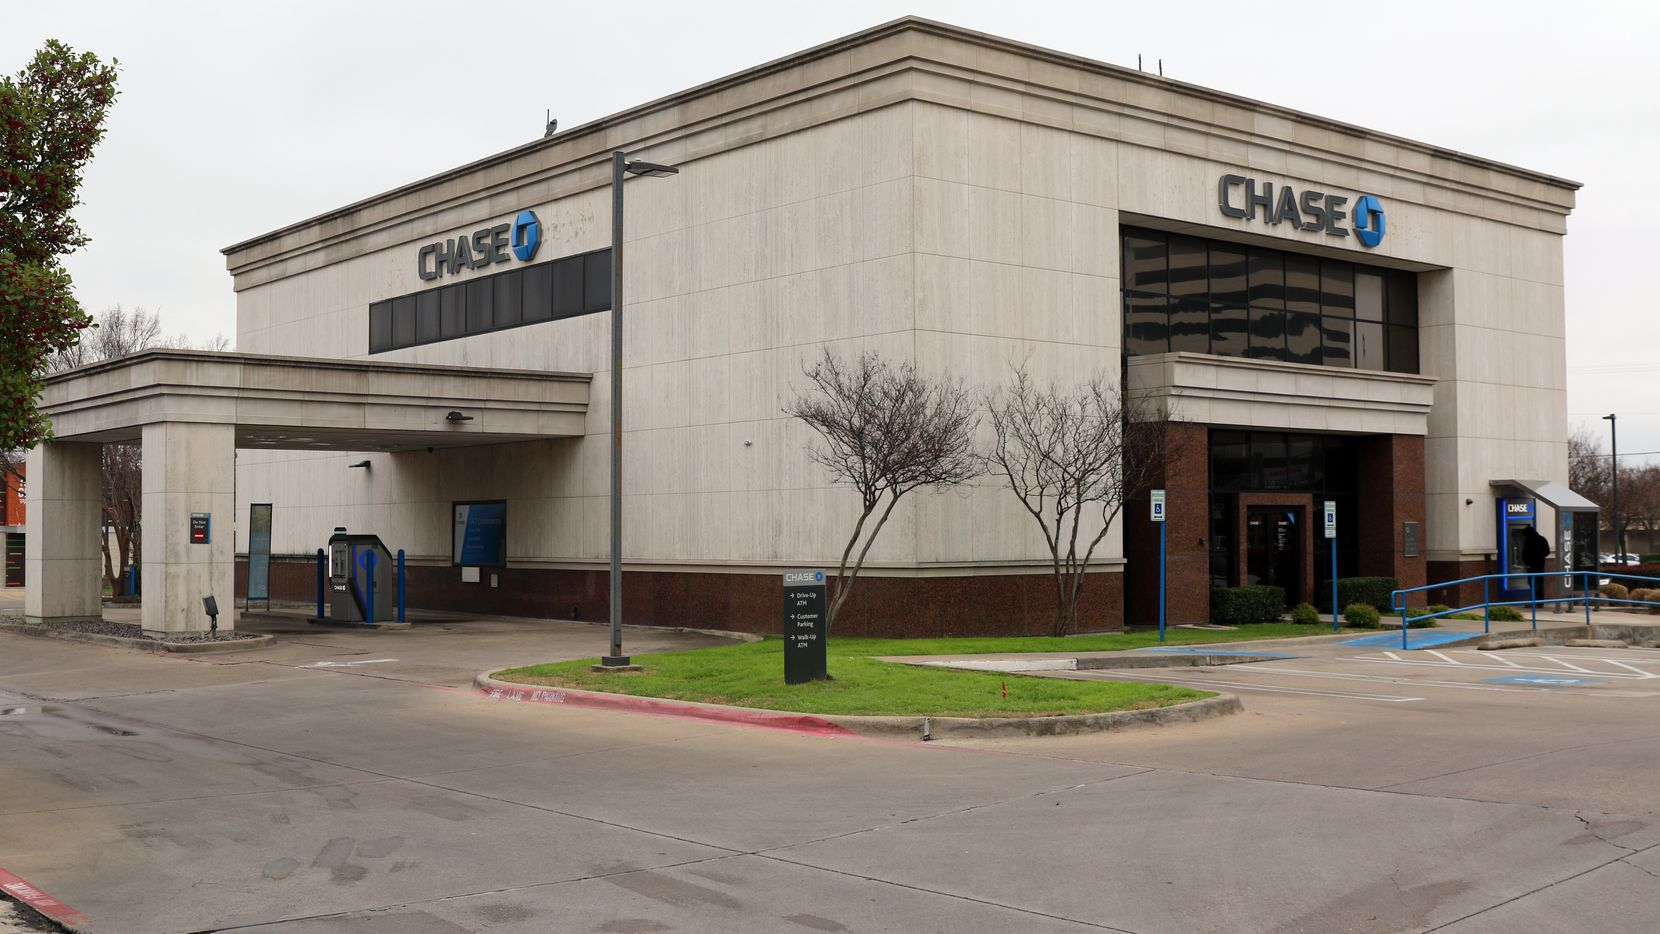 The Chase Bank on Coit Road in Richardson is where a Dallas woman came to announce she thought she was being scammed. Banks have new power to put a freeze on potential scam victims, but that didn't happen here.